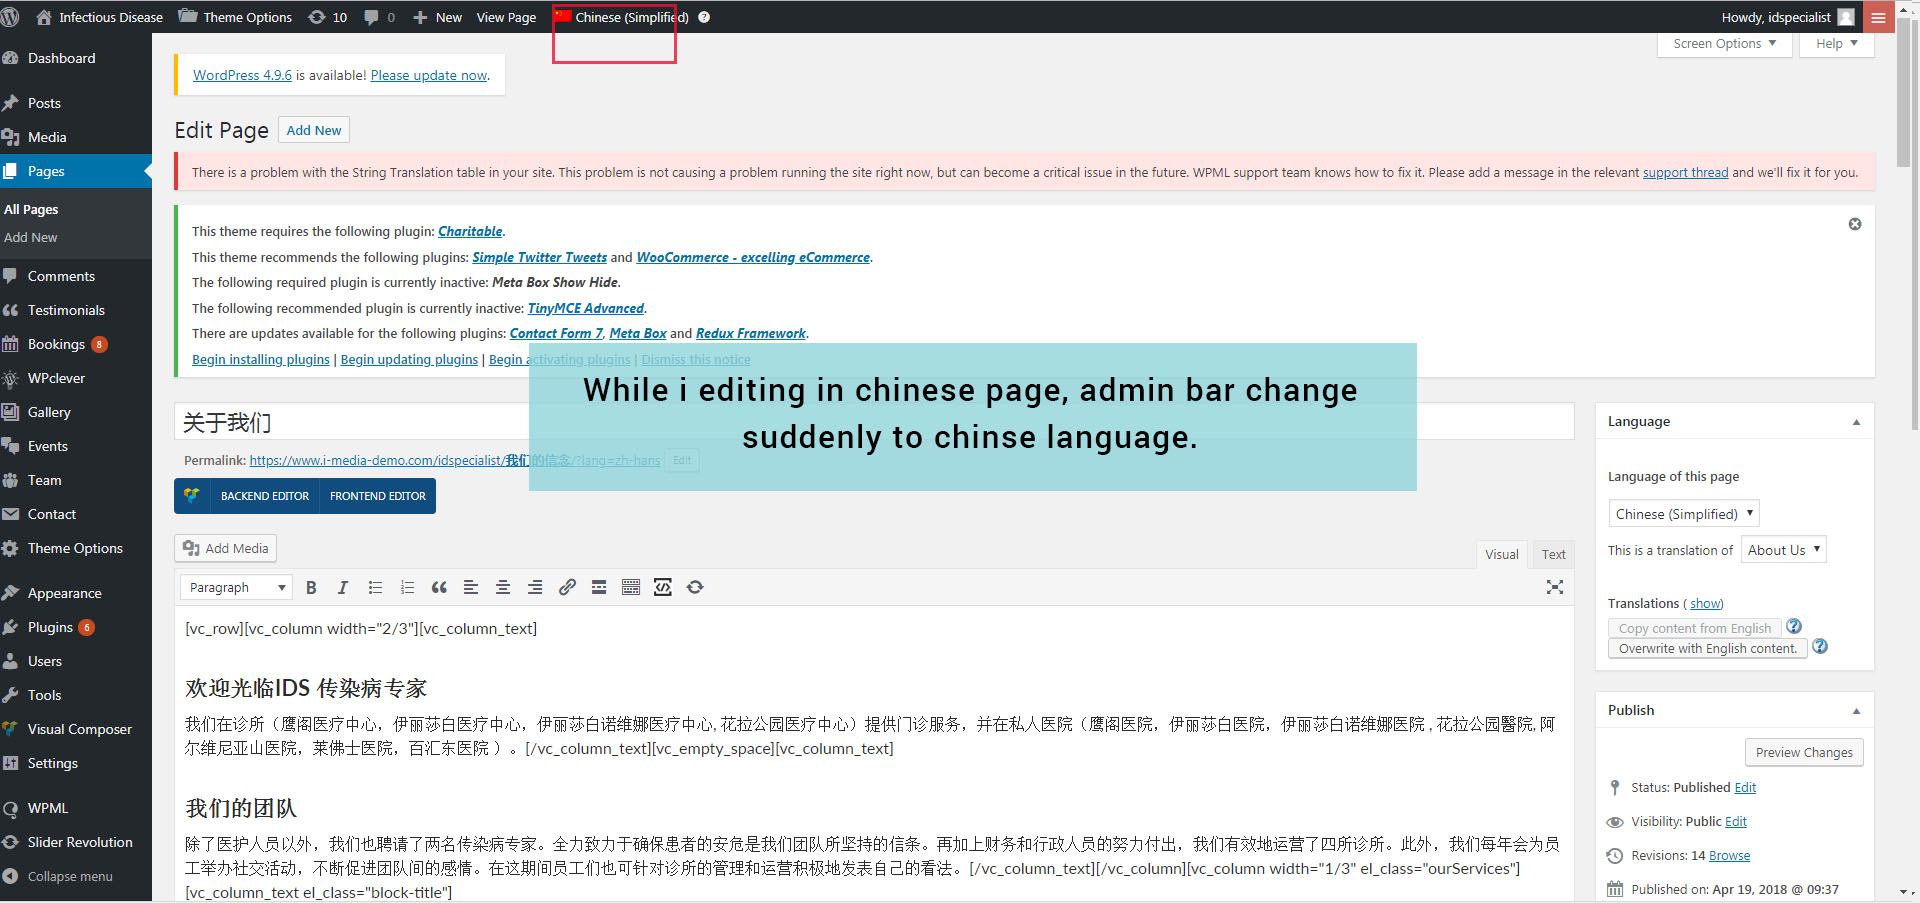 2.While-editing-in-chinese.jpg